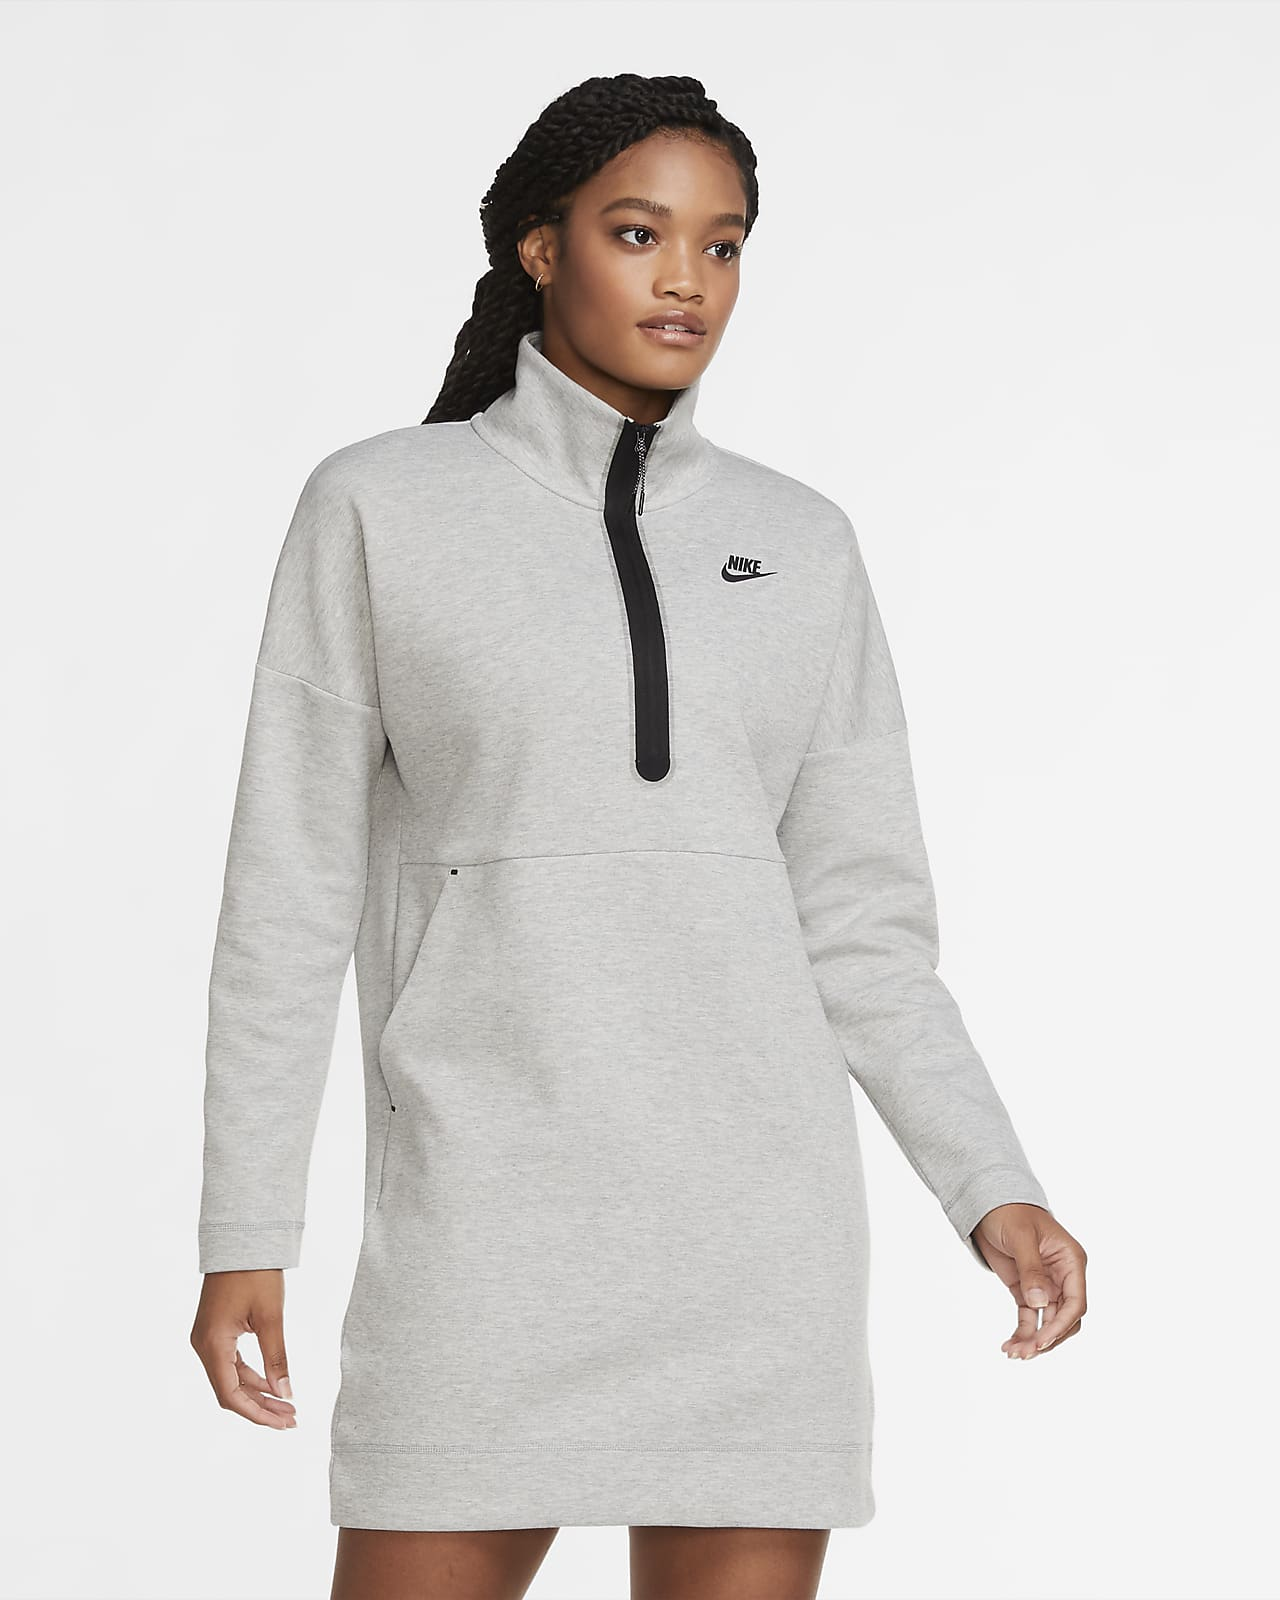 Nike Sportswear Tech Fleece Women's Half-Zip Dress